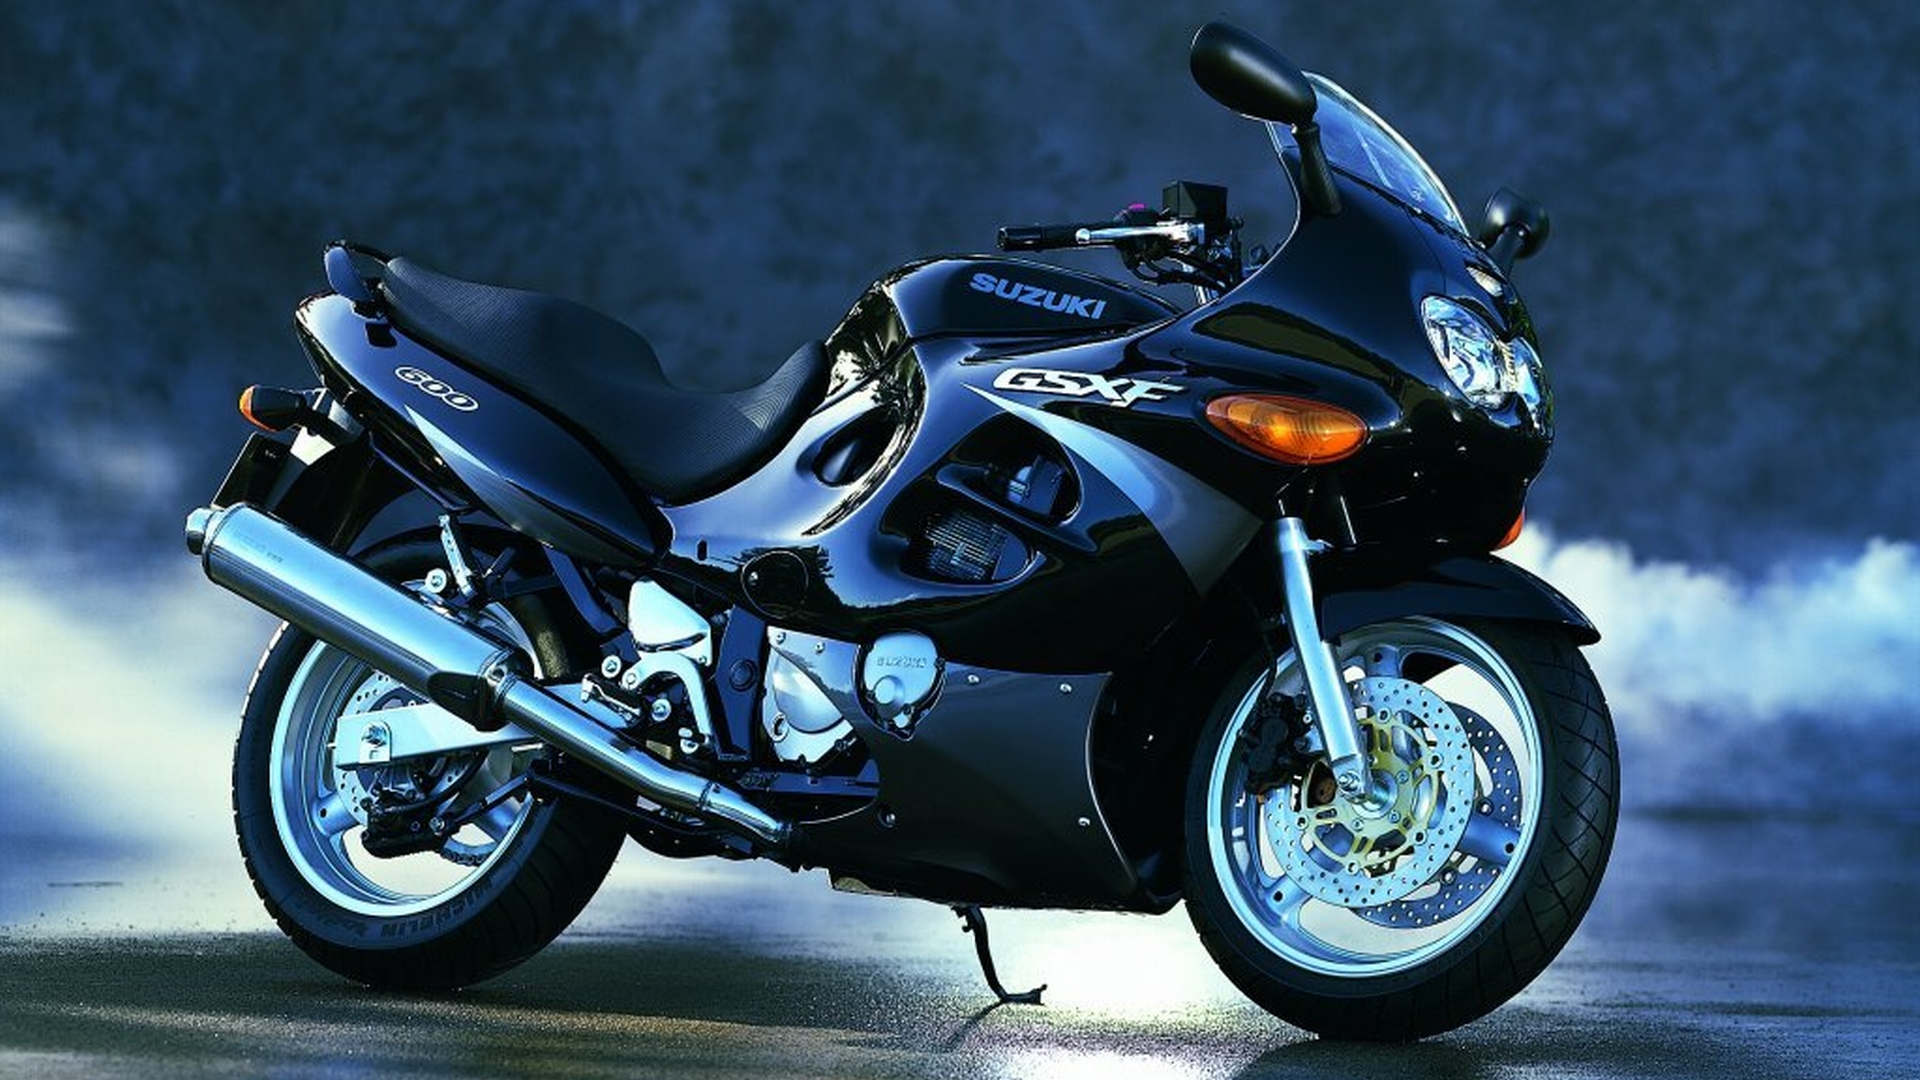 Related Pictures vehicles motorcycles aprilia rs 50 backgrounds 1920x1080